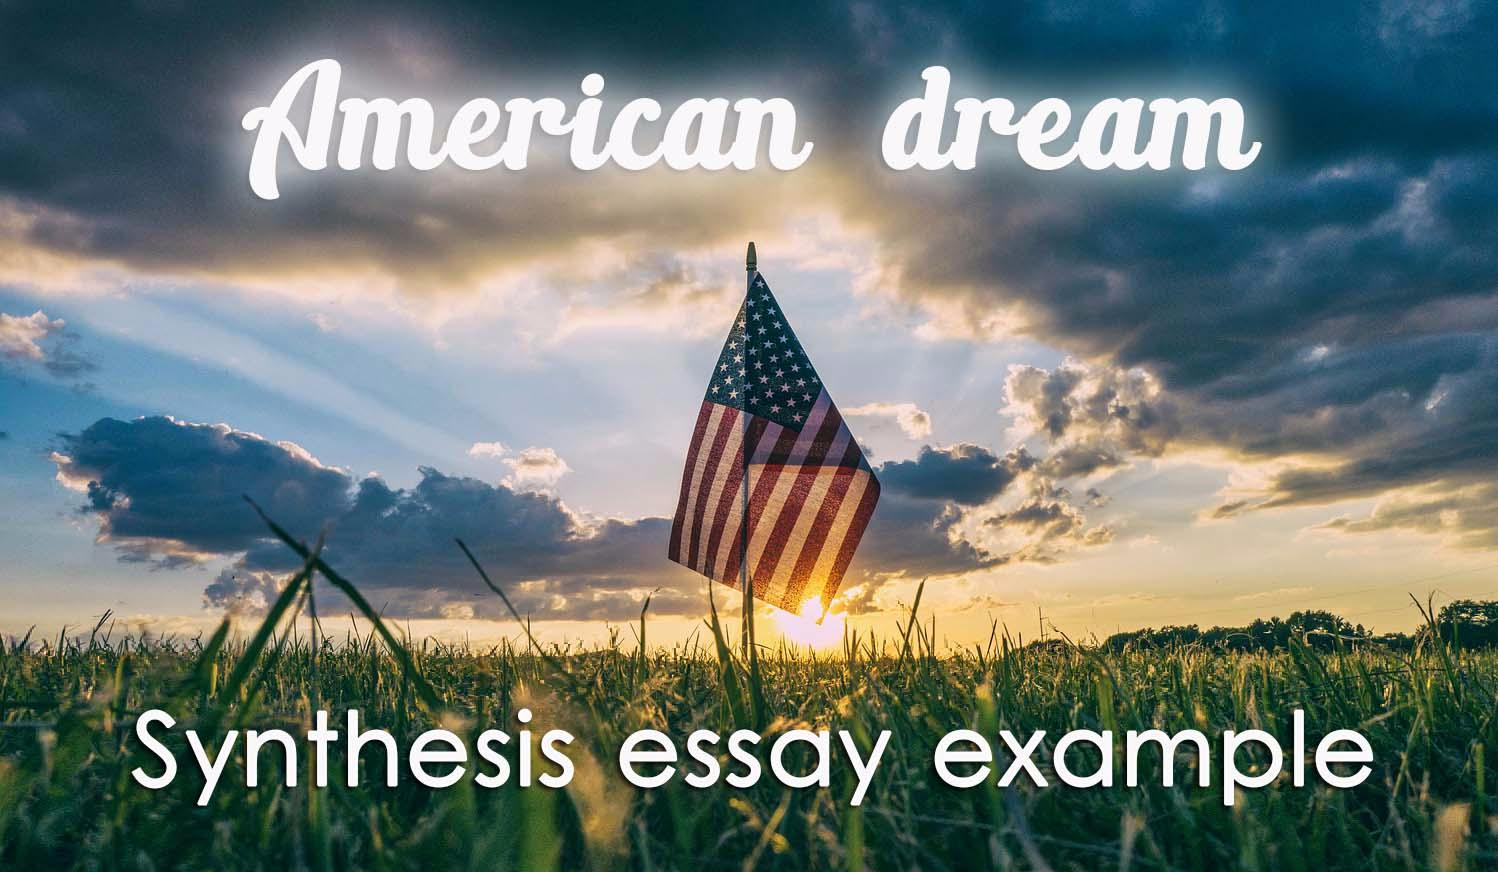 Synthesis Essay Example: Is the American Dream Still Achievable?